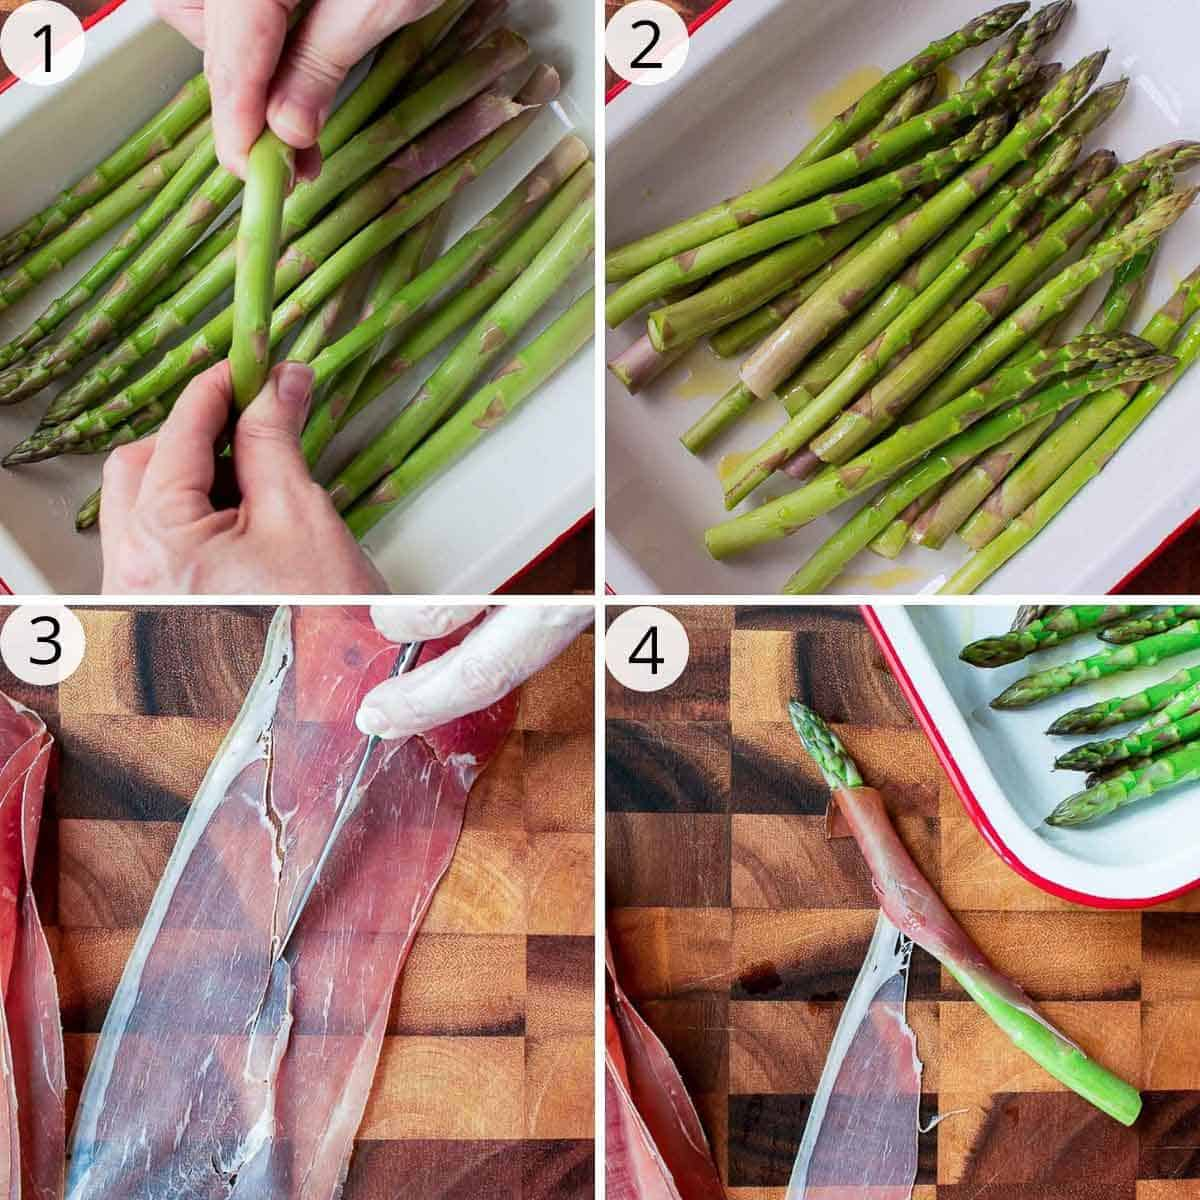 4-step photo collage showing preparation of asparagus wrapped in prosciutto.